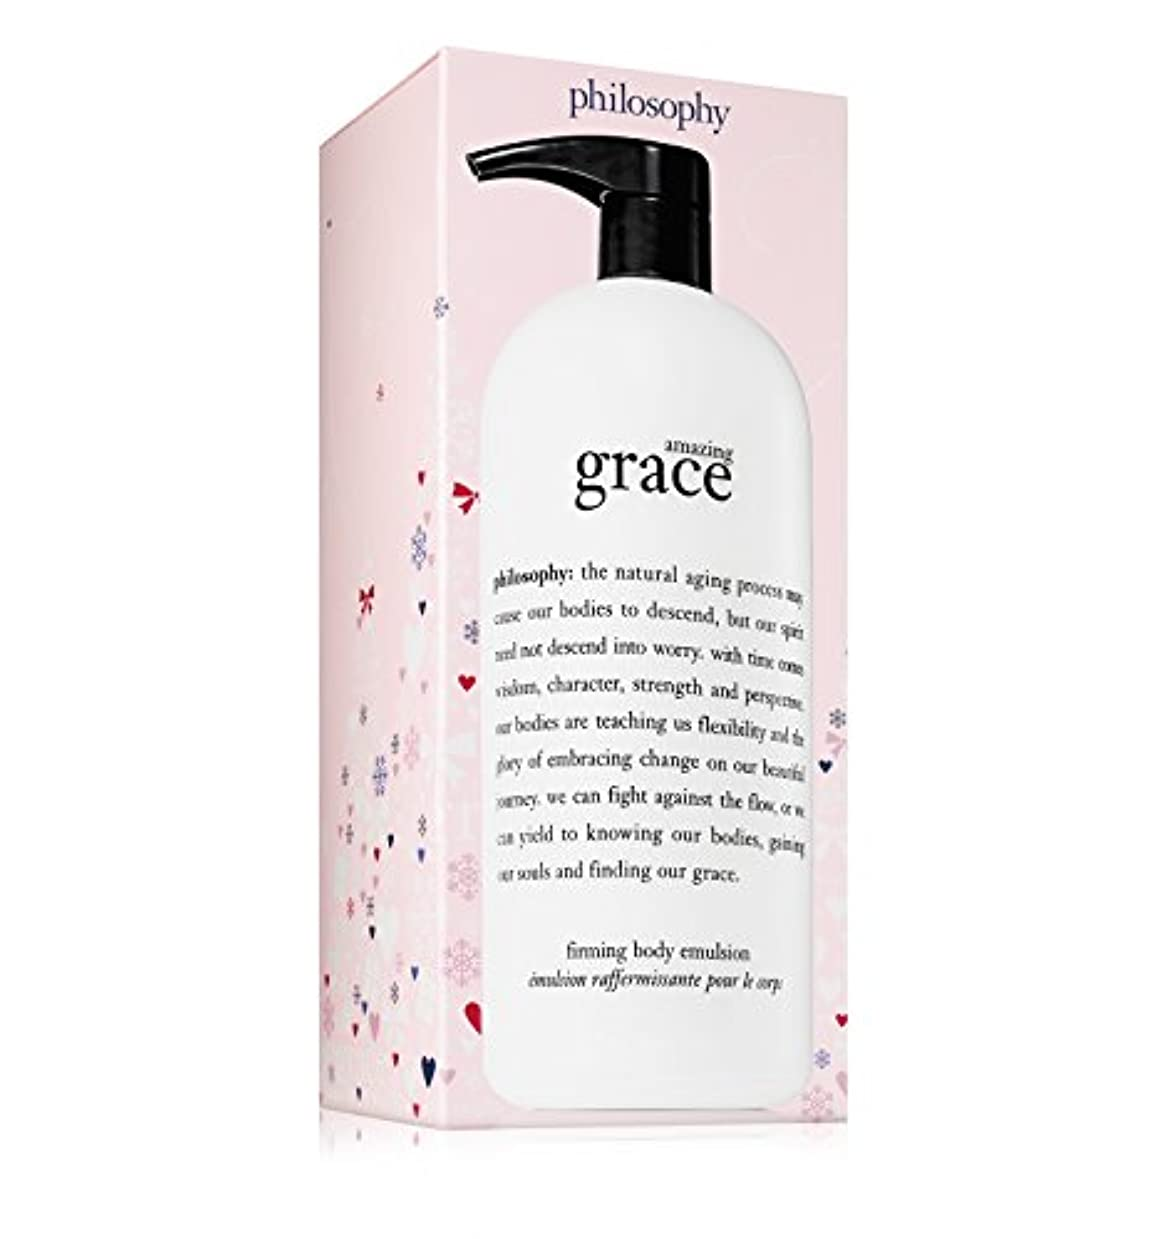 ジェット拡大するキャンペーンPhilosophy - Amazing Grace Firming Body Emulsion Jumbo Limited Edition Holiday 2017